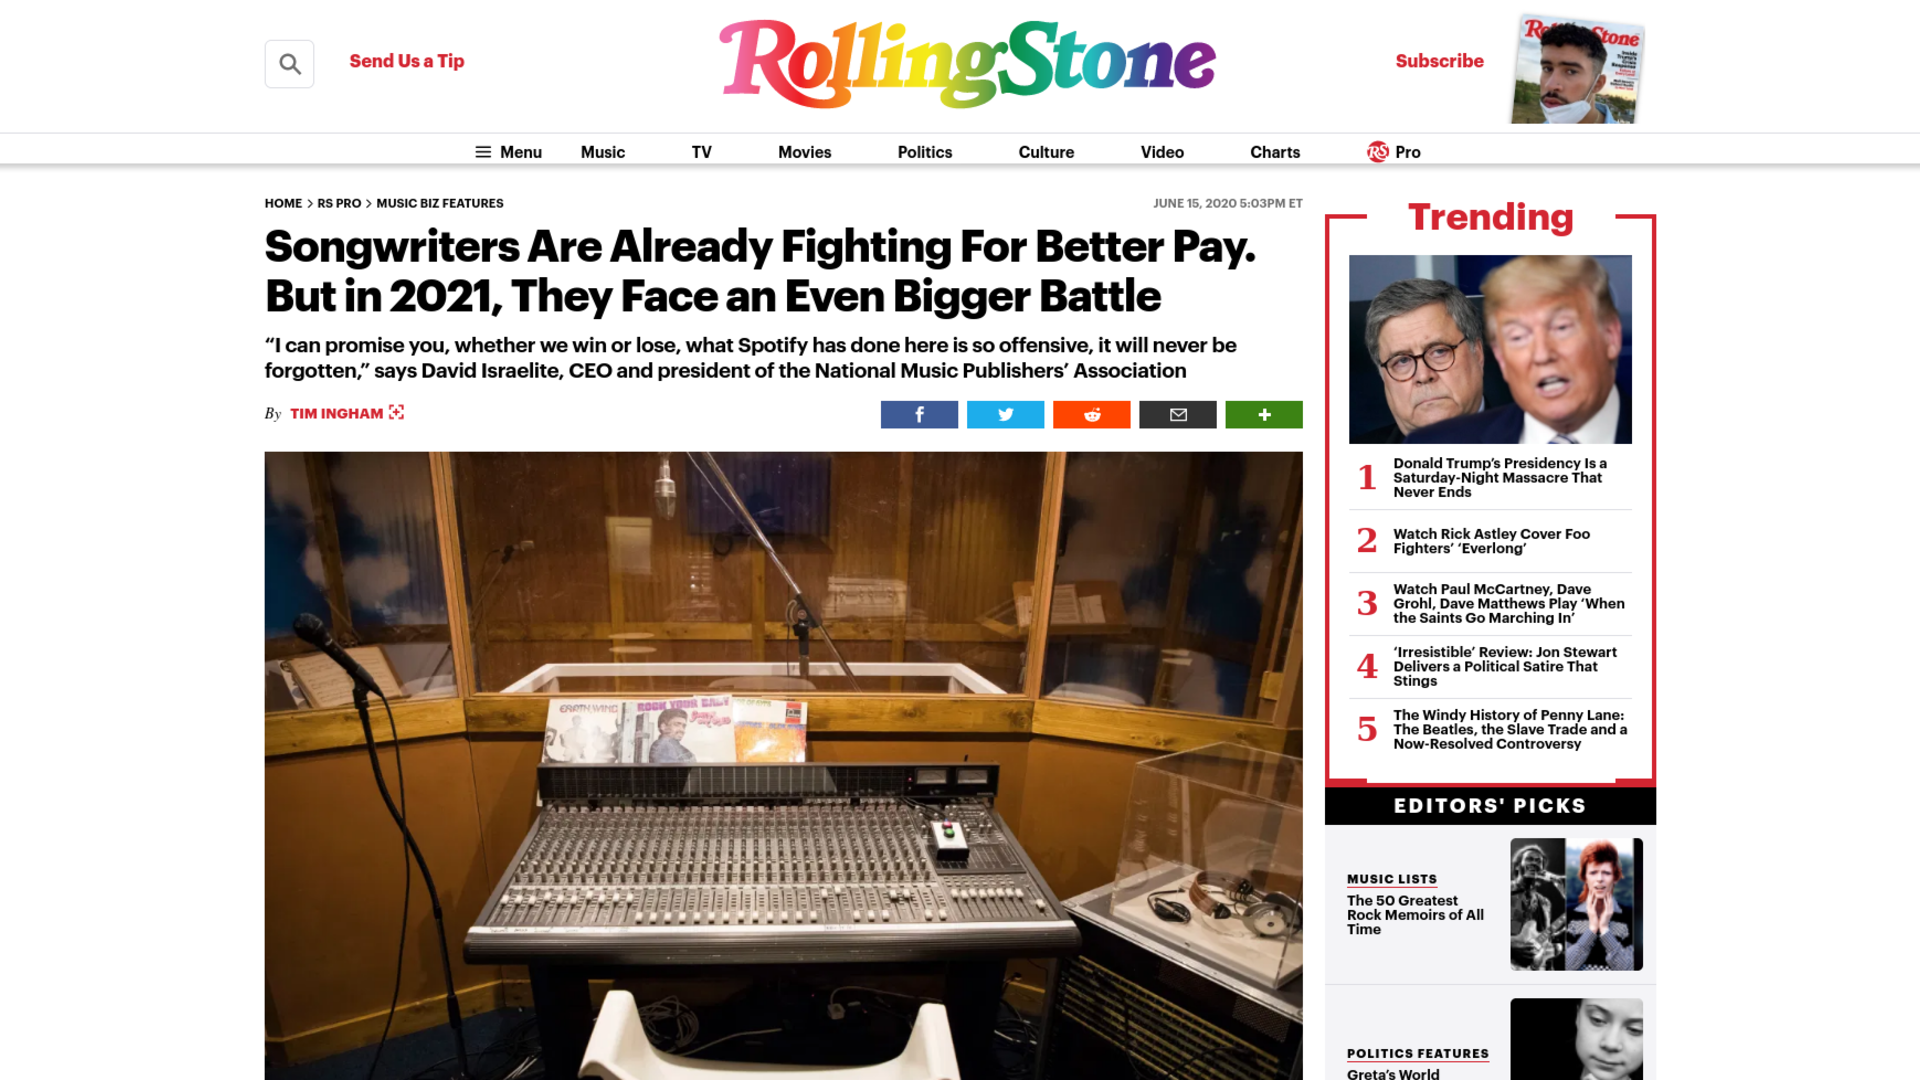 Fairness Rocks News Songwriters Are Already Fighting For Better Pay. But in 2021, They Face an Even Bigger Battle